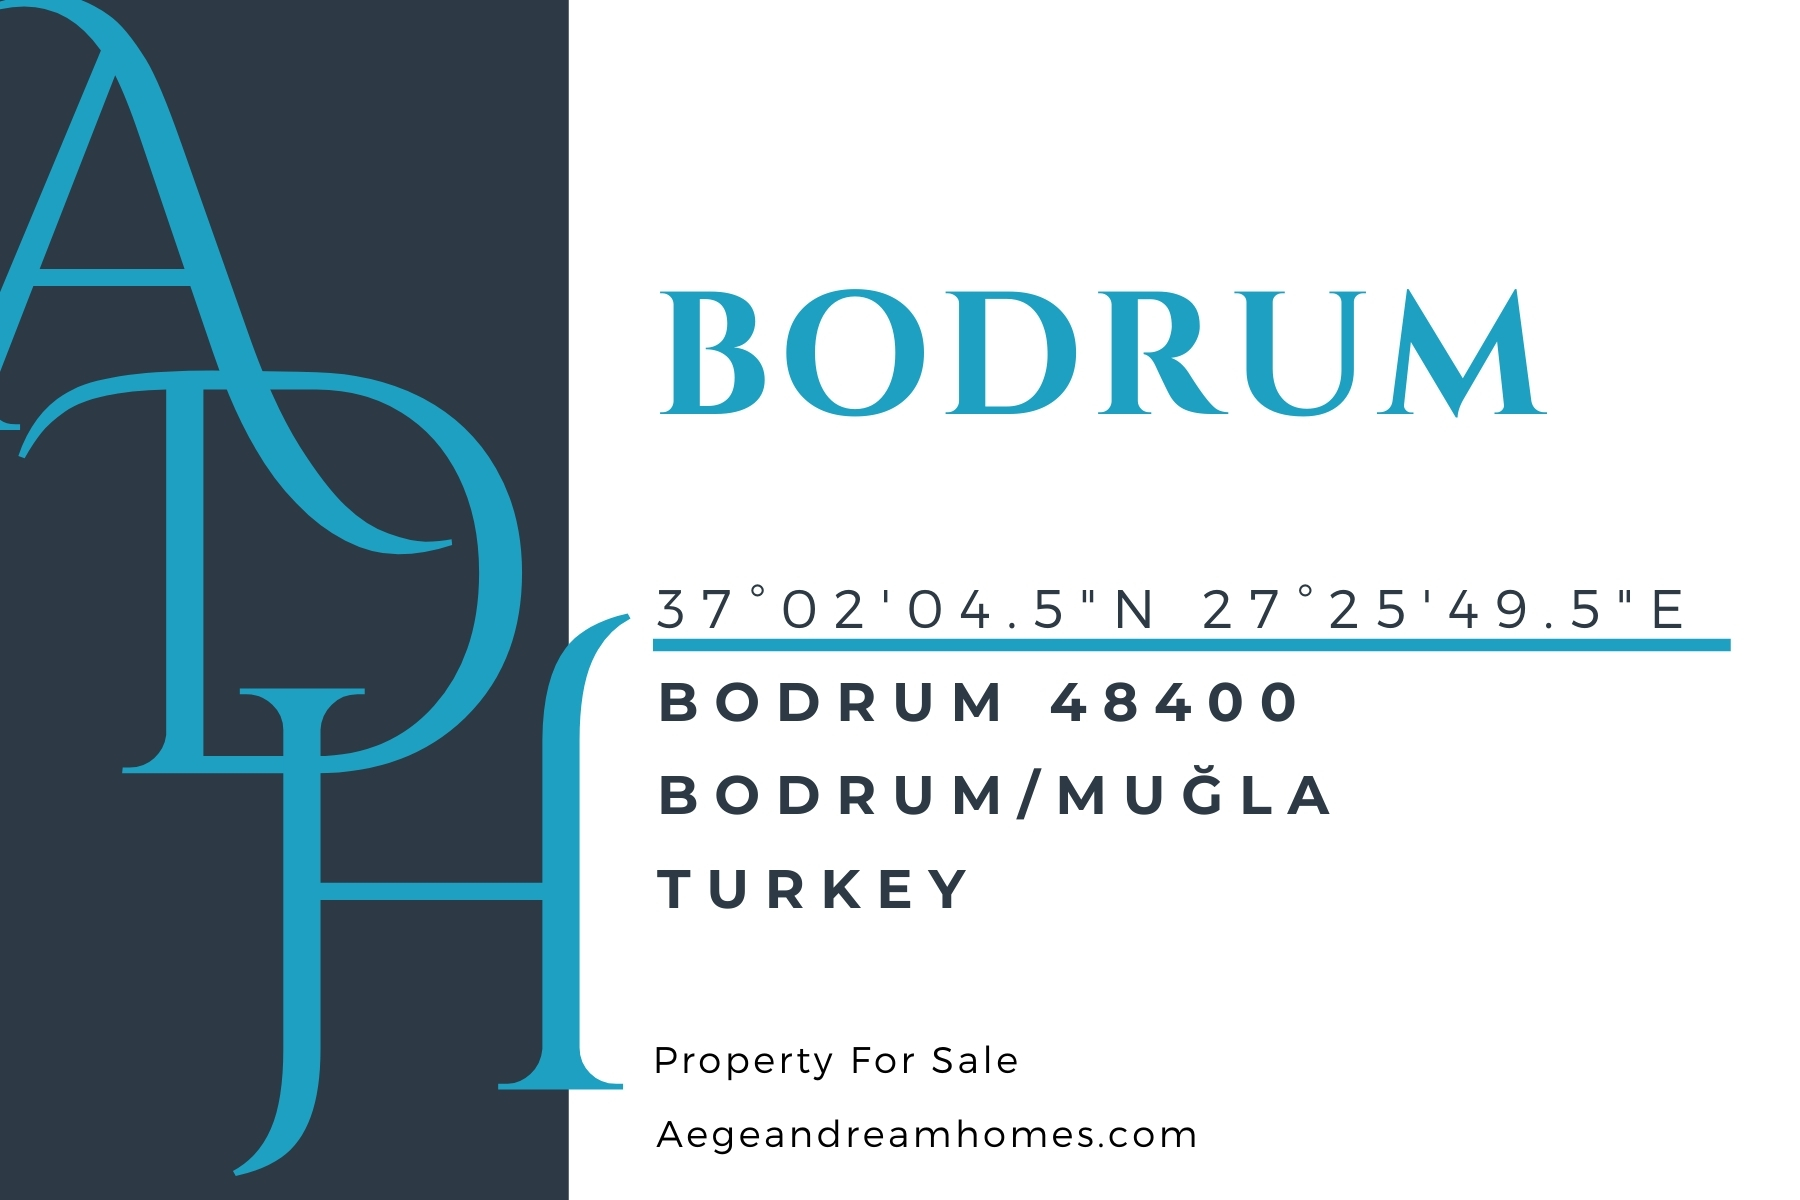 Bodrum postcard. Bodrum address, locations and property for sale..